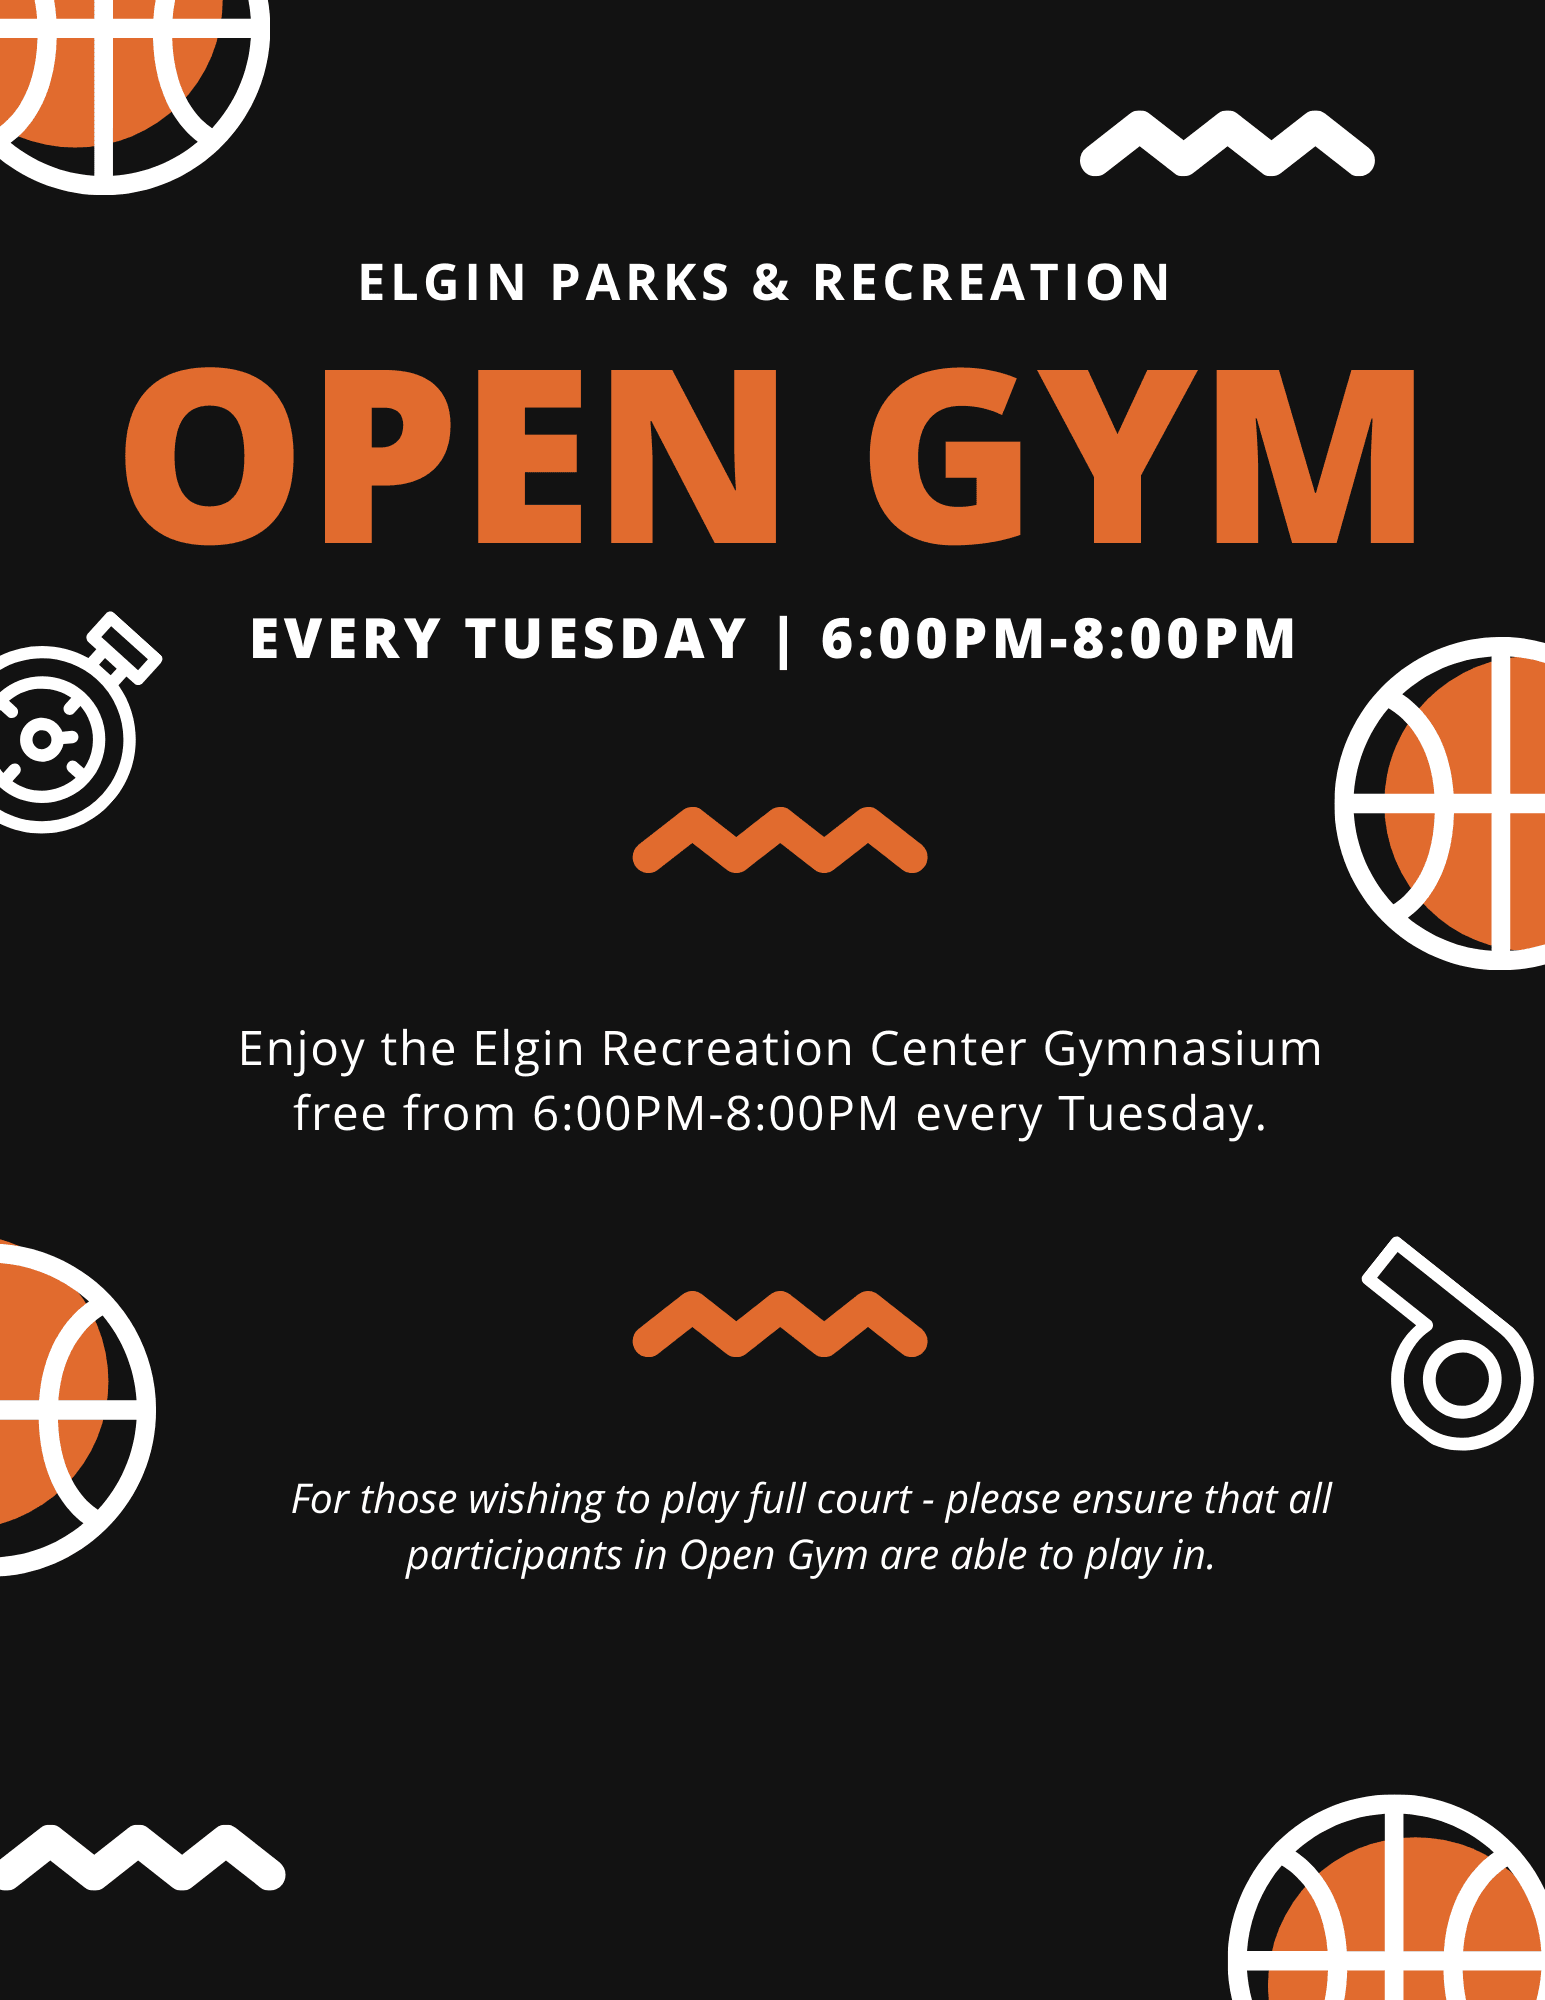 open gym tuesday nights